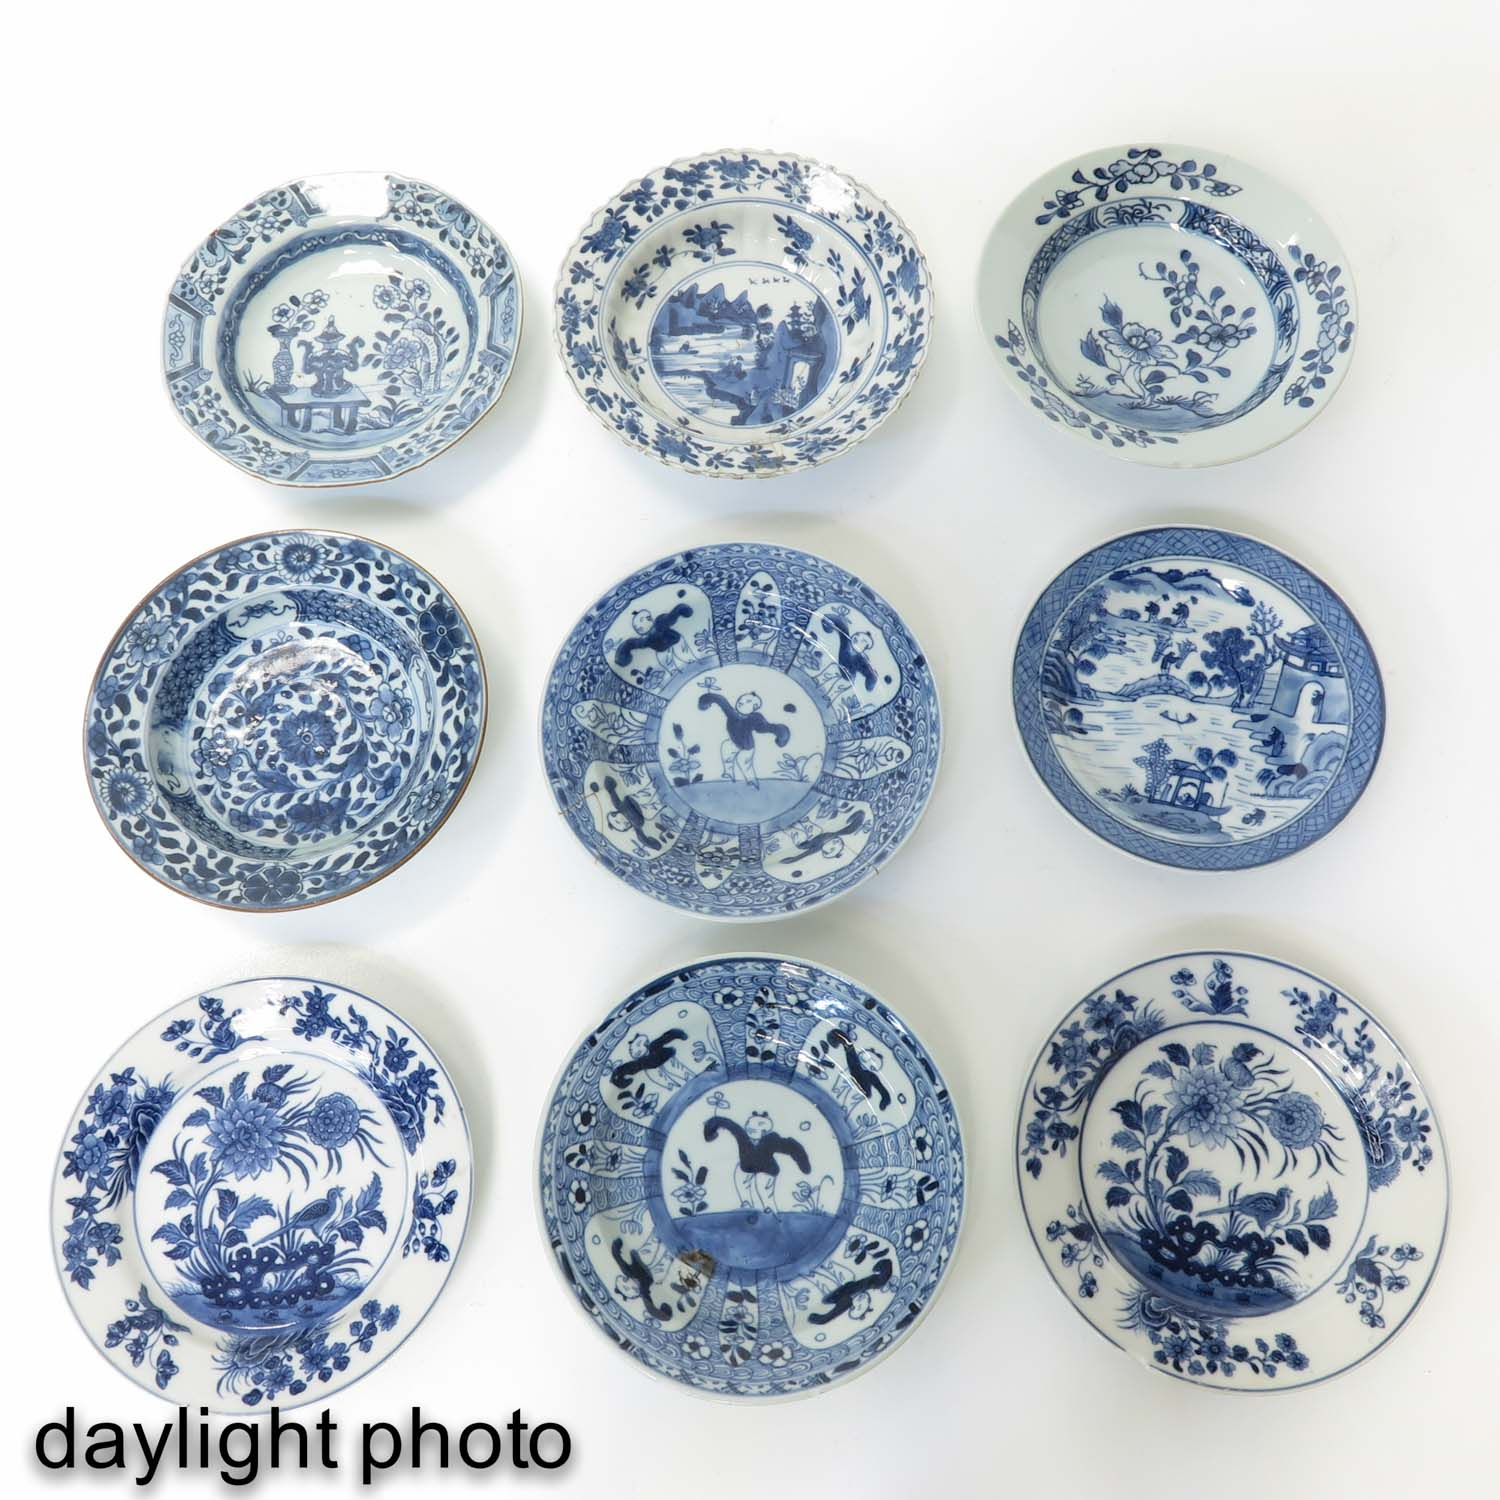 A Collection of 9 Blue and White Plates - Image 9 of 10